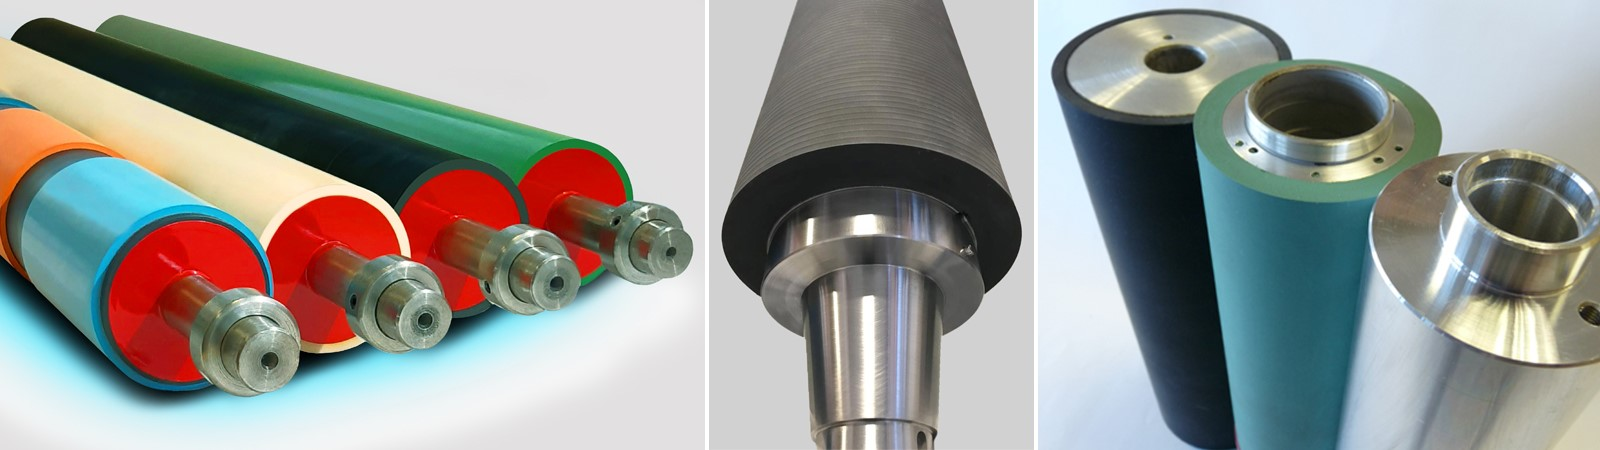 Rubber Covered Rollers - Rubber Covered Cylinders and Sleeves